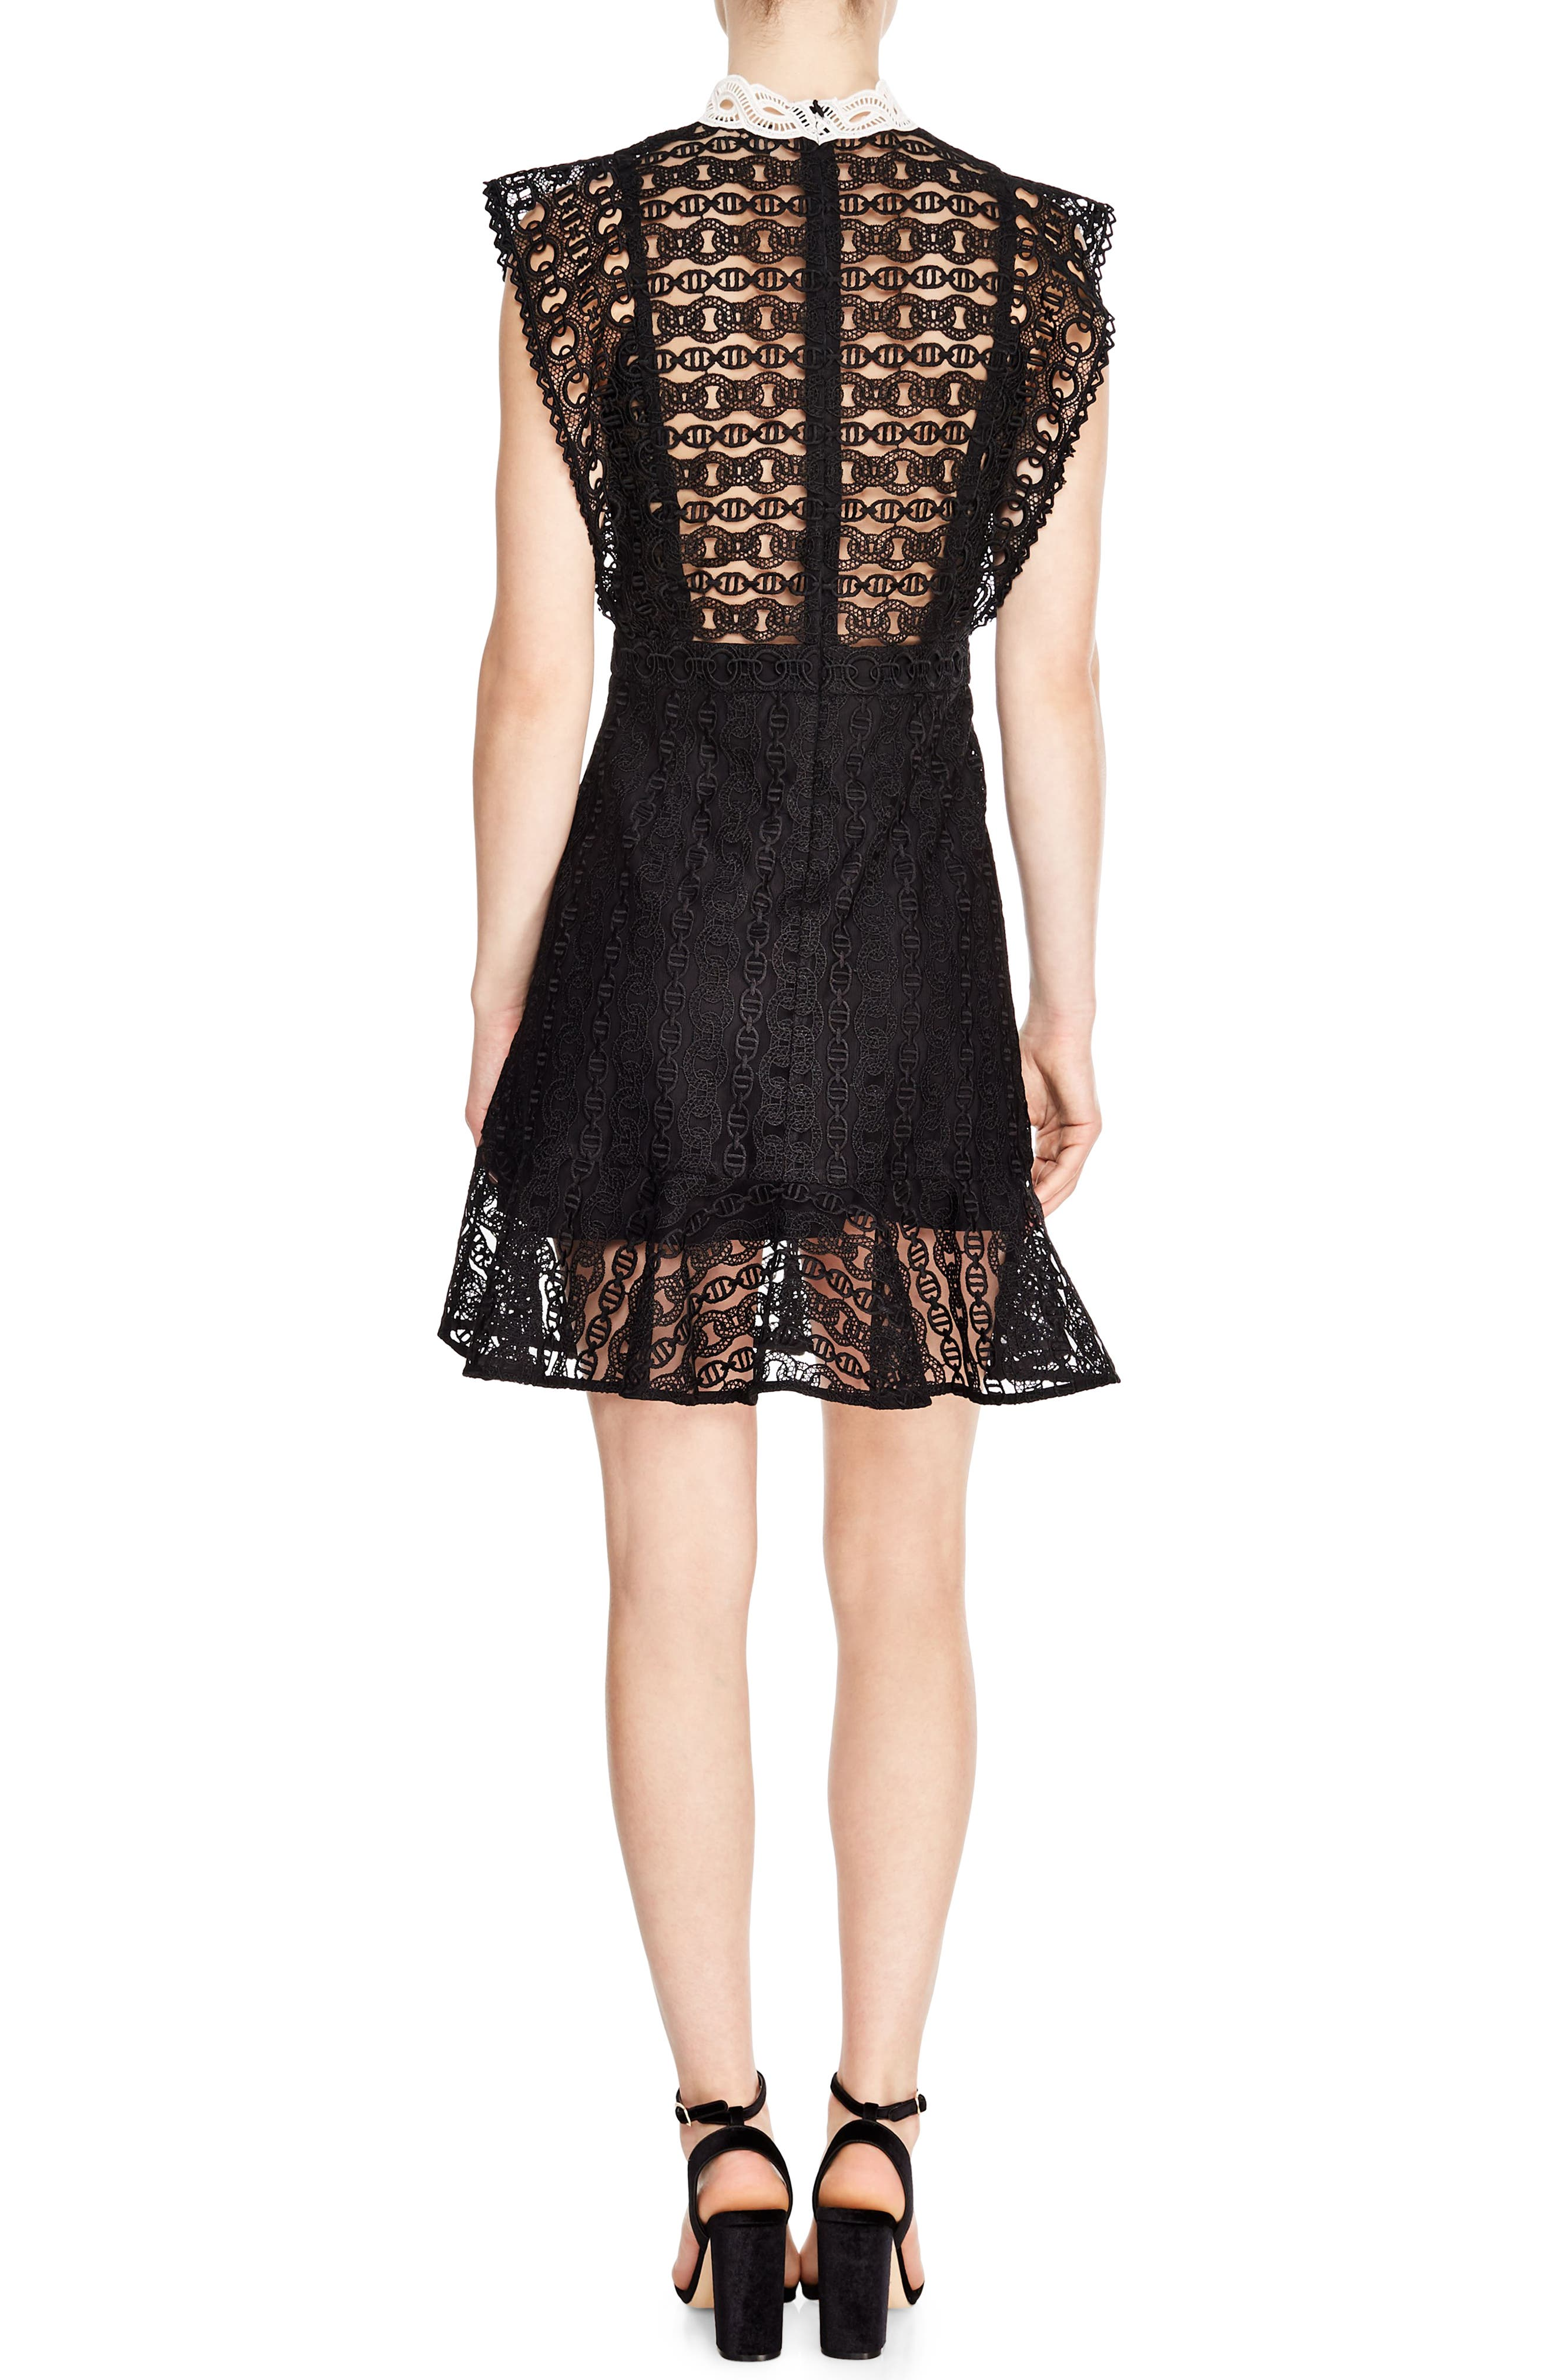 SANDRO, France Chain Link Lace Dress, Alternate thumbnail 2, color, BLACK